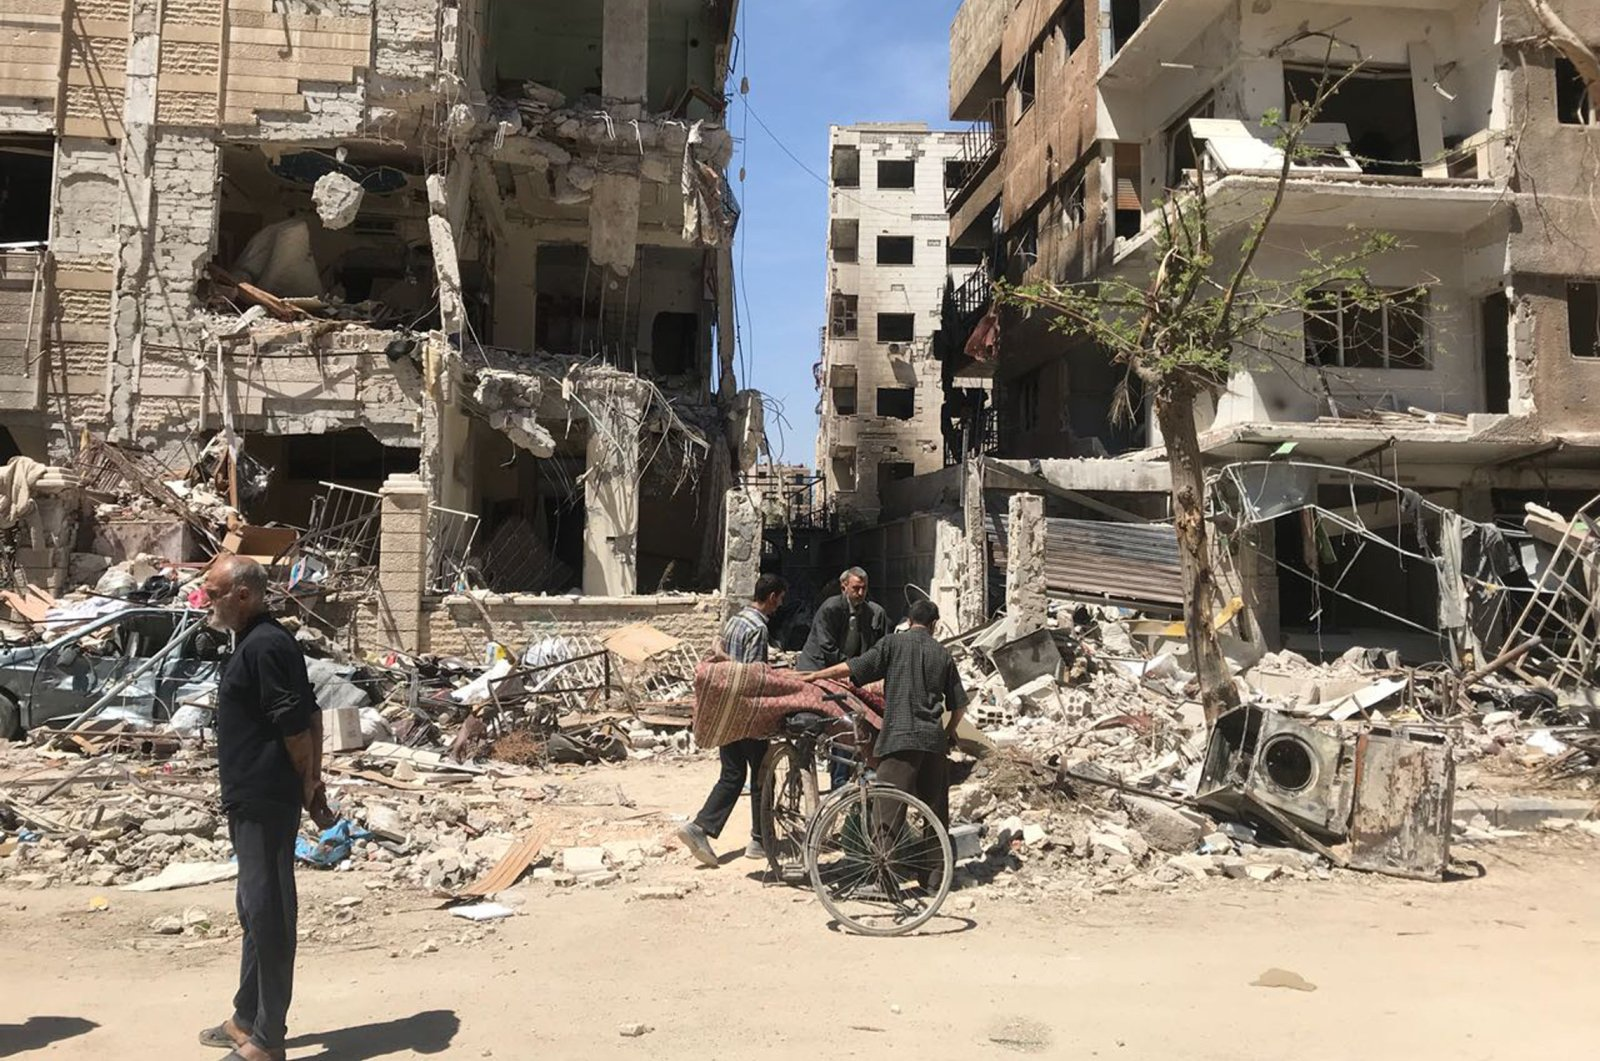 People stand in front of damaged buildings, in the town of Douma, the site of a suspected chemical weapons attack, near Damascus, Syria, April 16, 2018. (AP Photo)